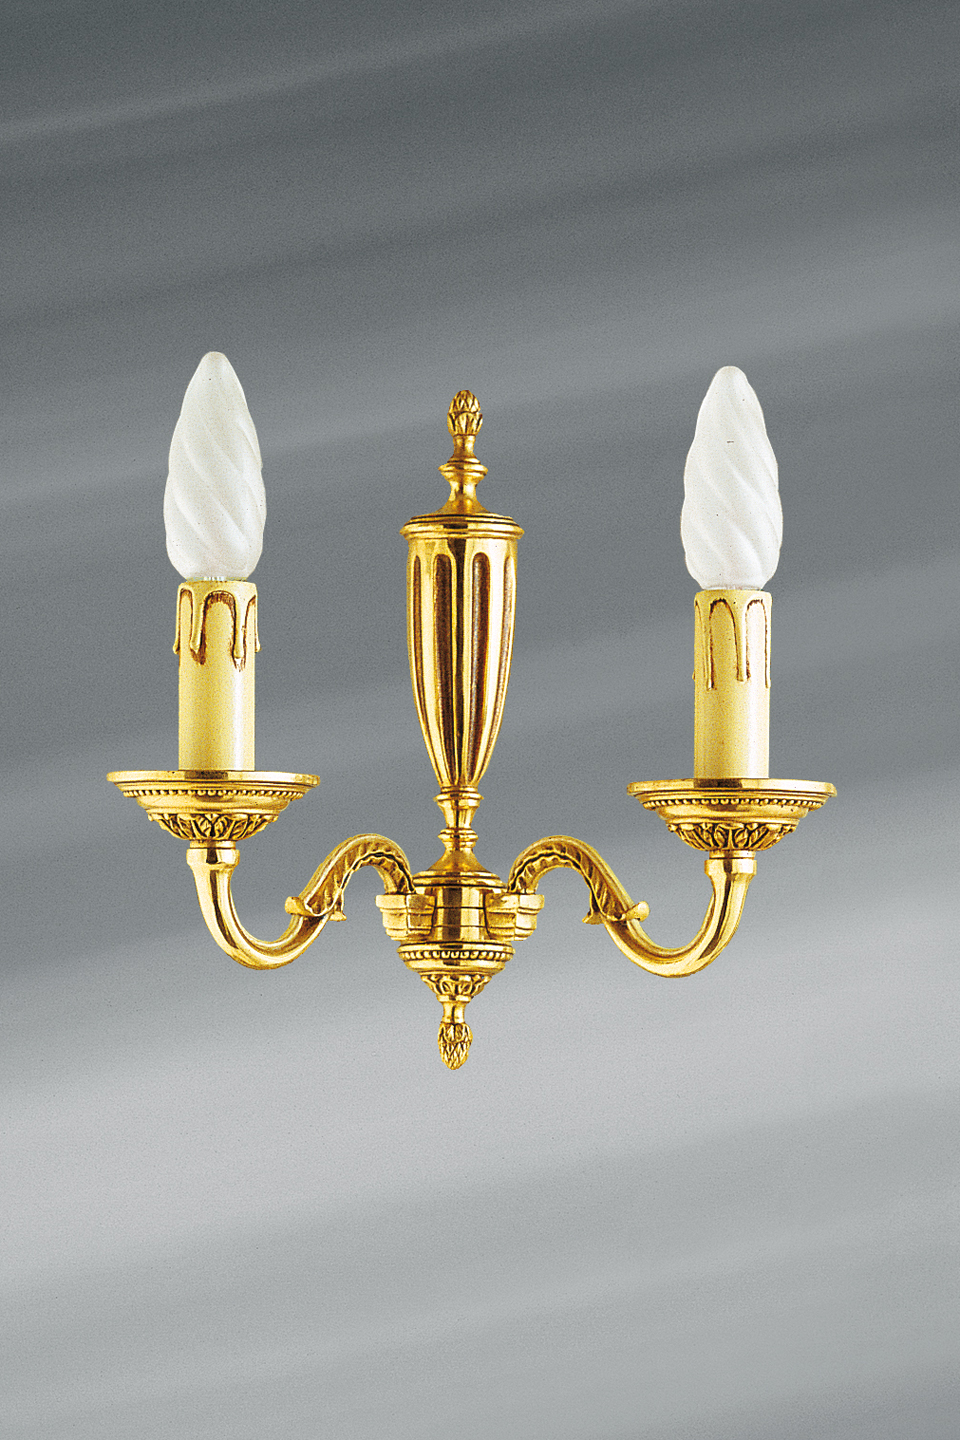 Wall Lamp Louis Xvi Patinated Old Gold Two Candles Lucien Gau Massive Bronze Lightings Made In France Applique Doree Deux Lumieres Bras A Double Volutes Bassins Ouvrages De Feuilles